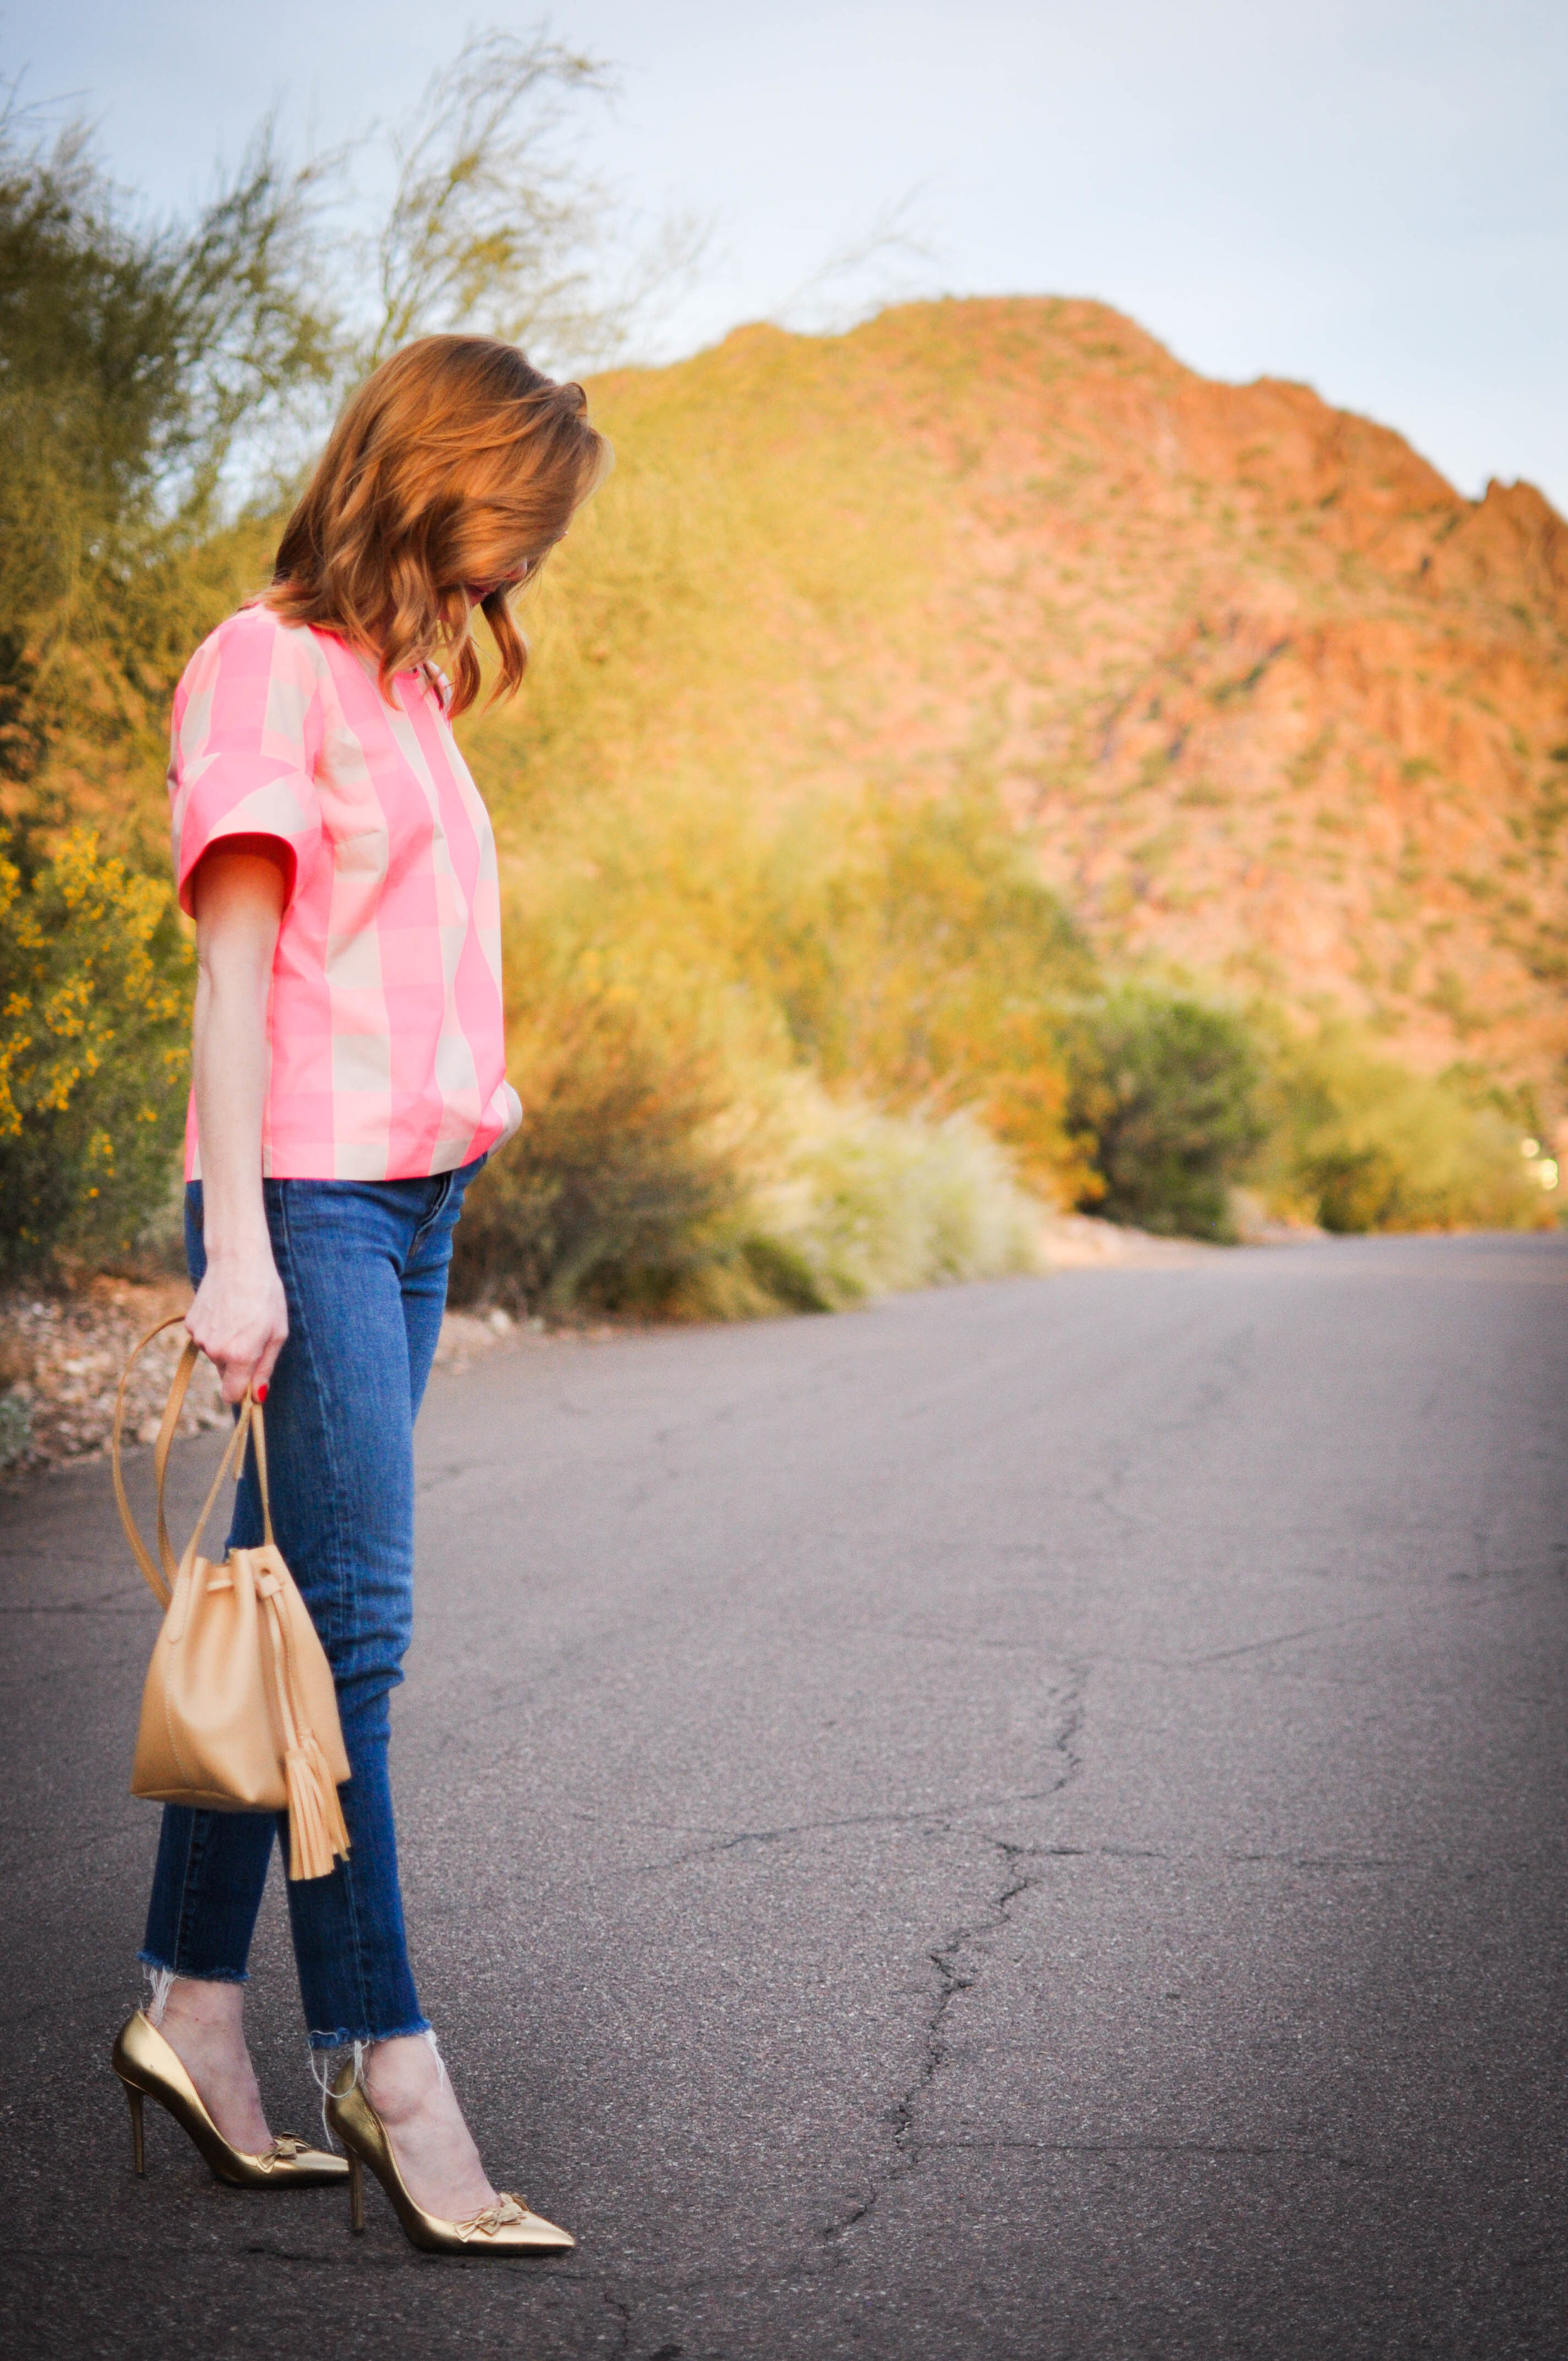 woman in pink top and jeans crossing desert road